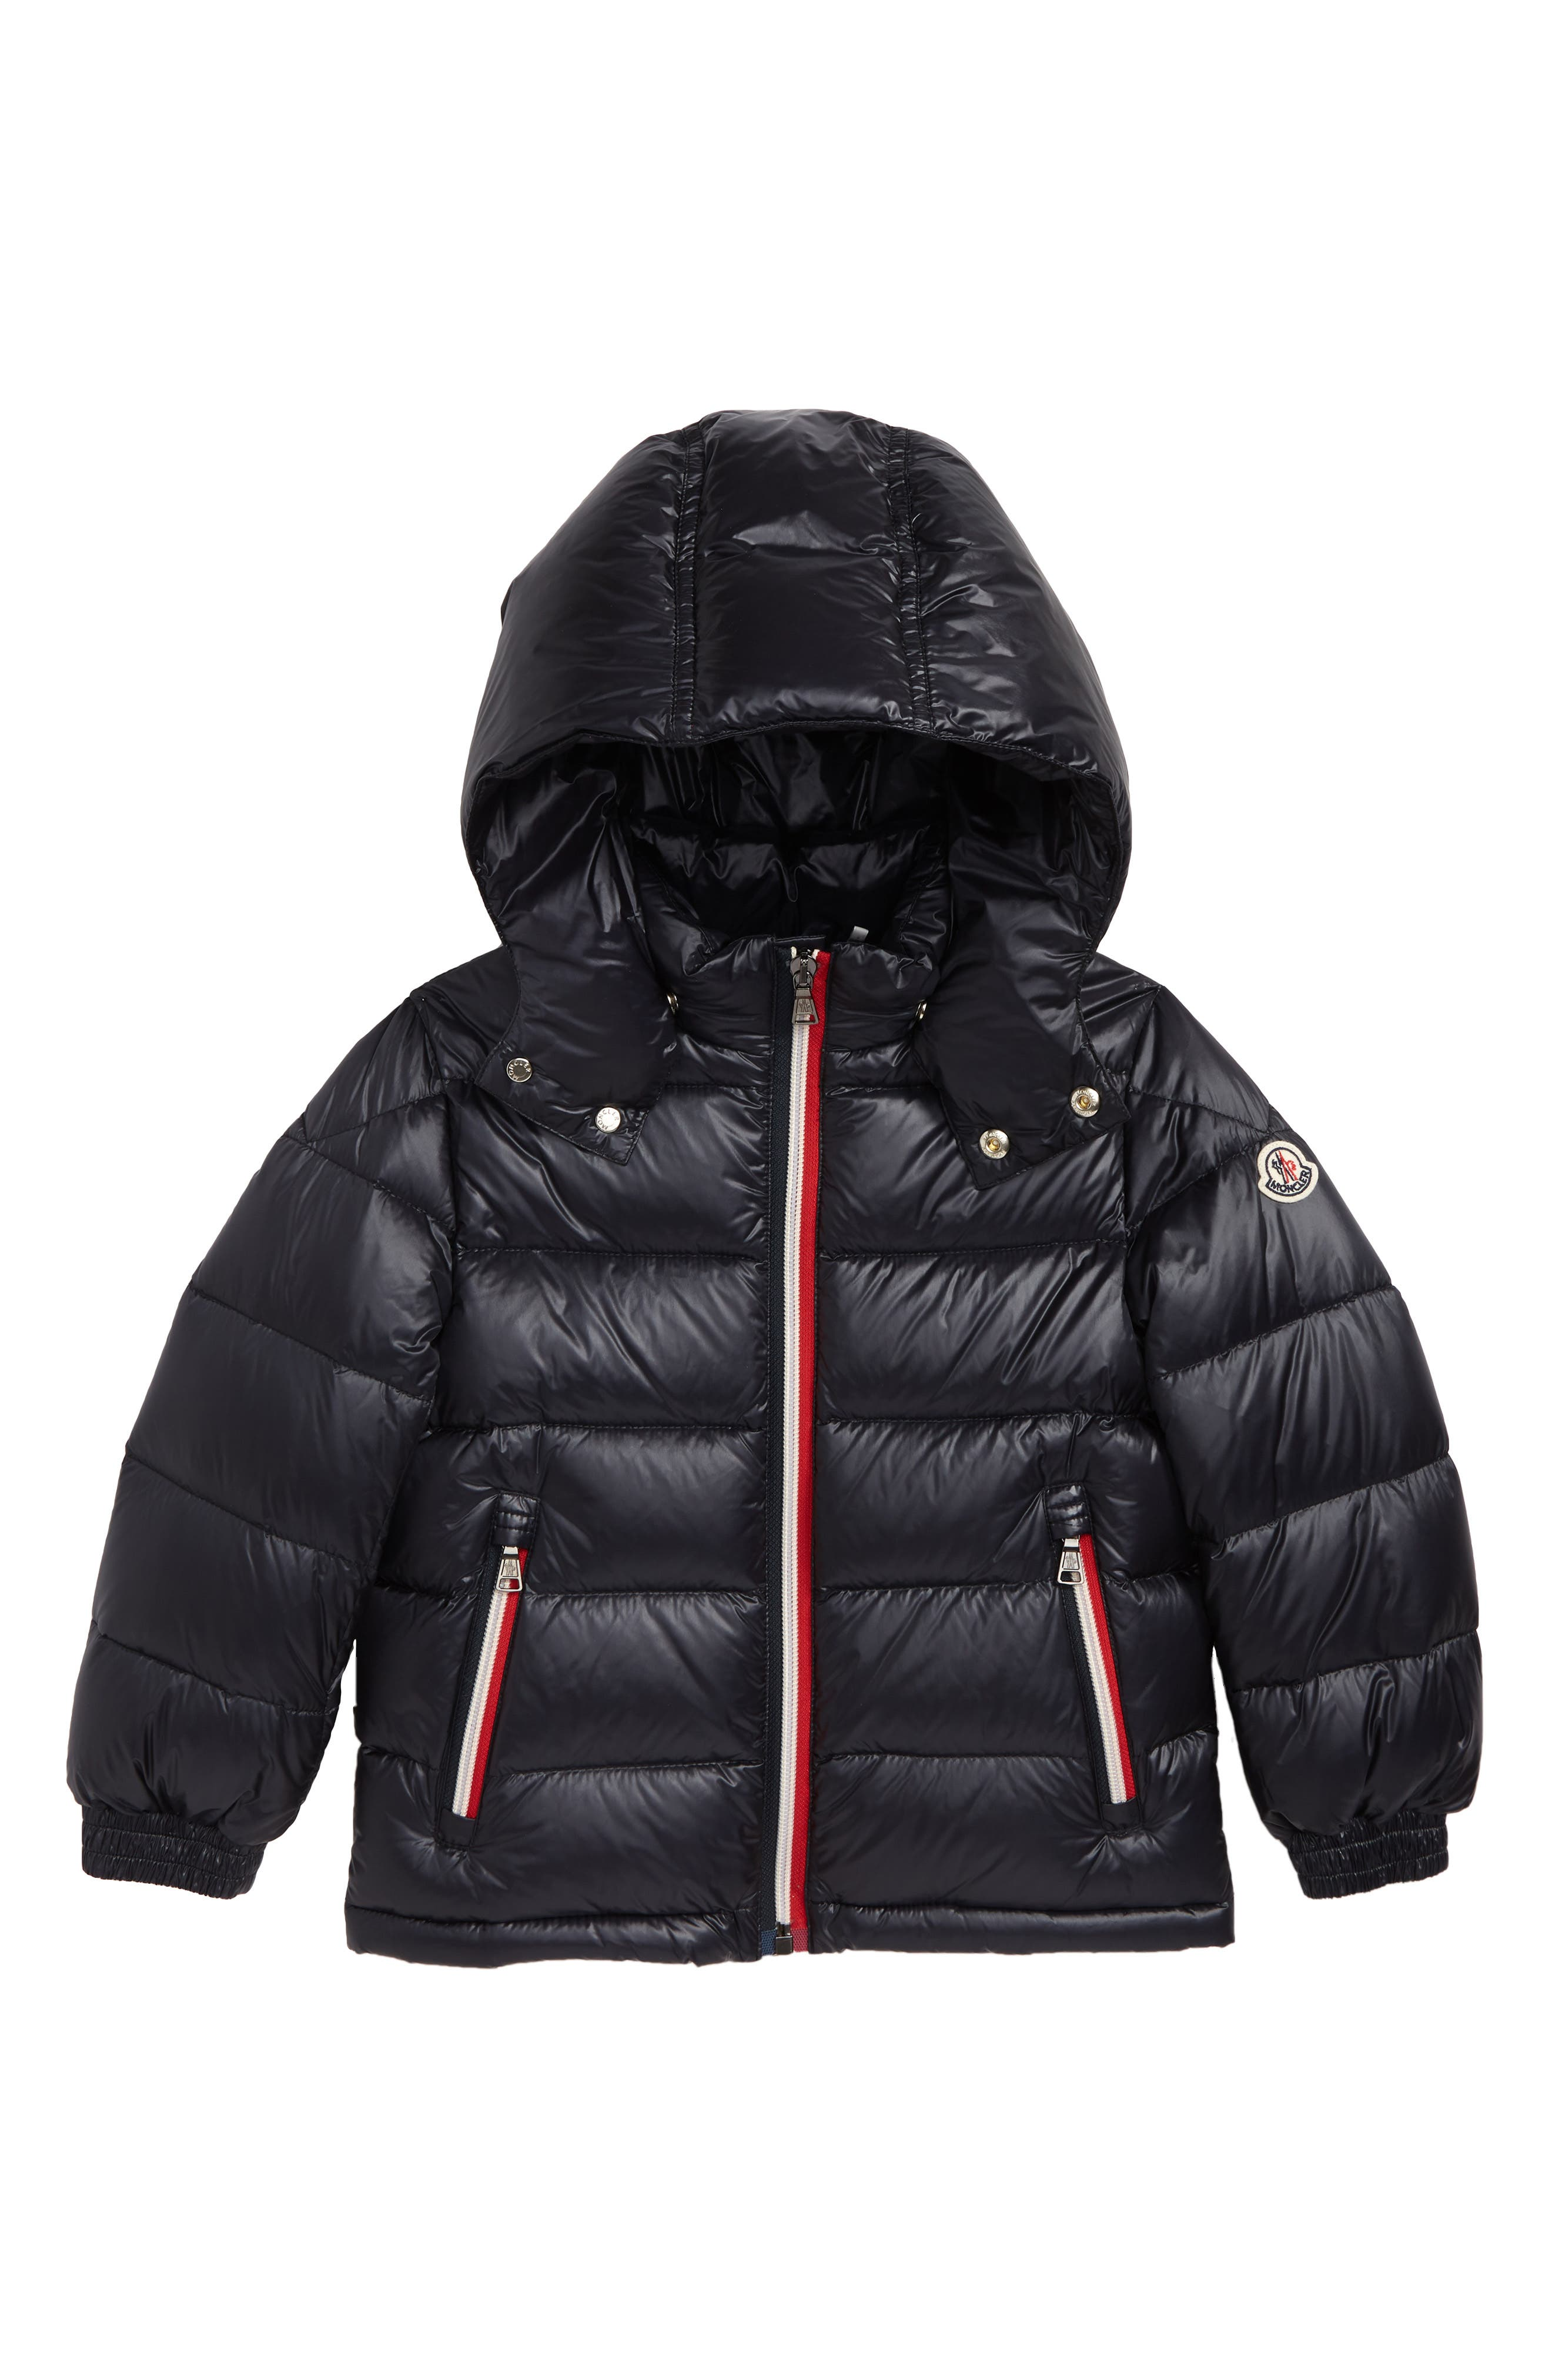 Gastonet Hooded Water Resistant Down Jacket,                             Main thumbnail 1, color,                             NAVY